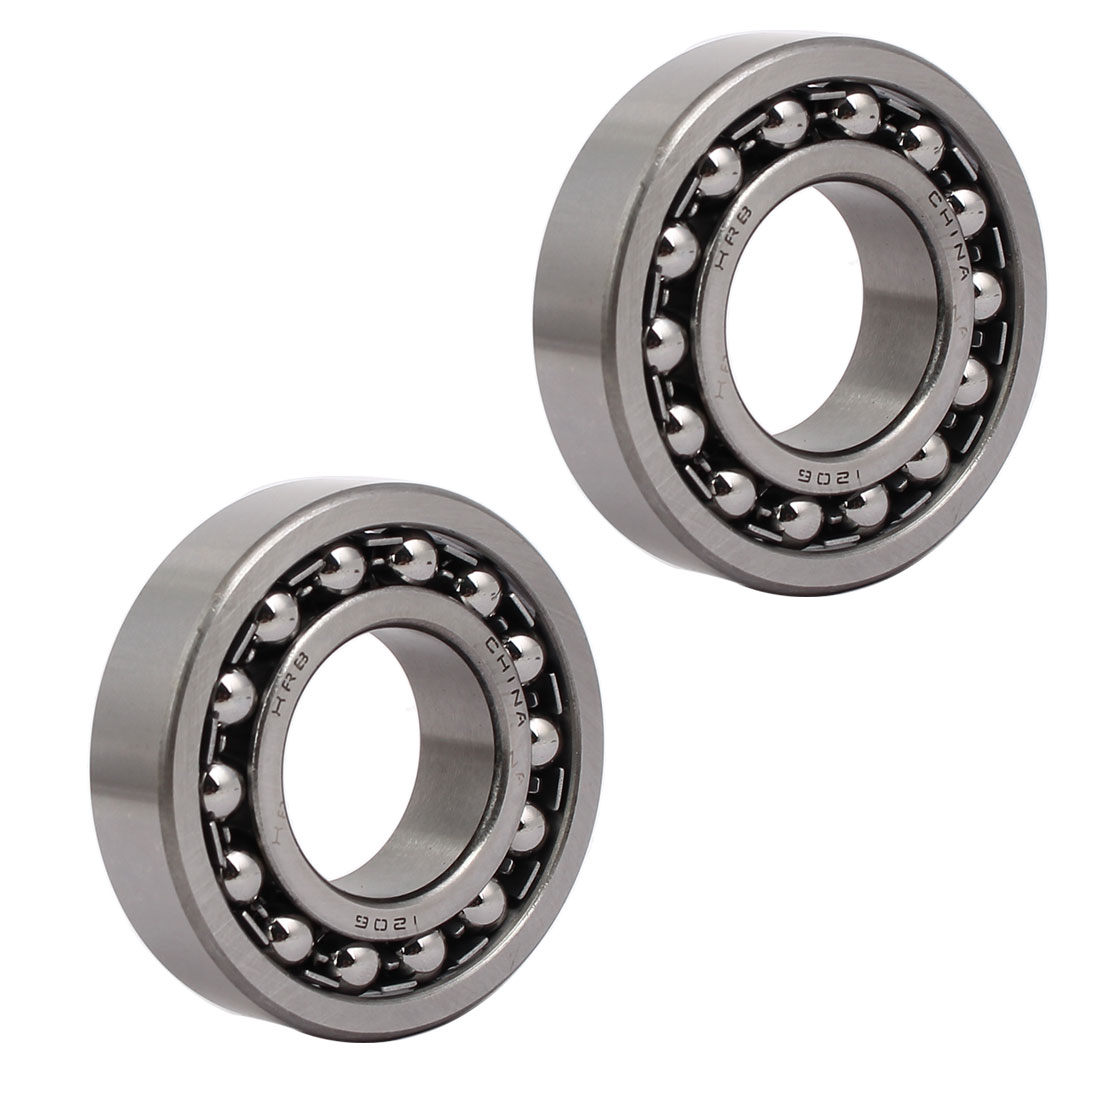 62mmx30mmx16mm 1206 Double Row Self-Aligning Ball Bearing 2pcs